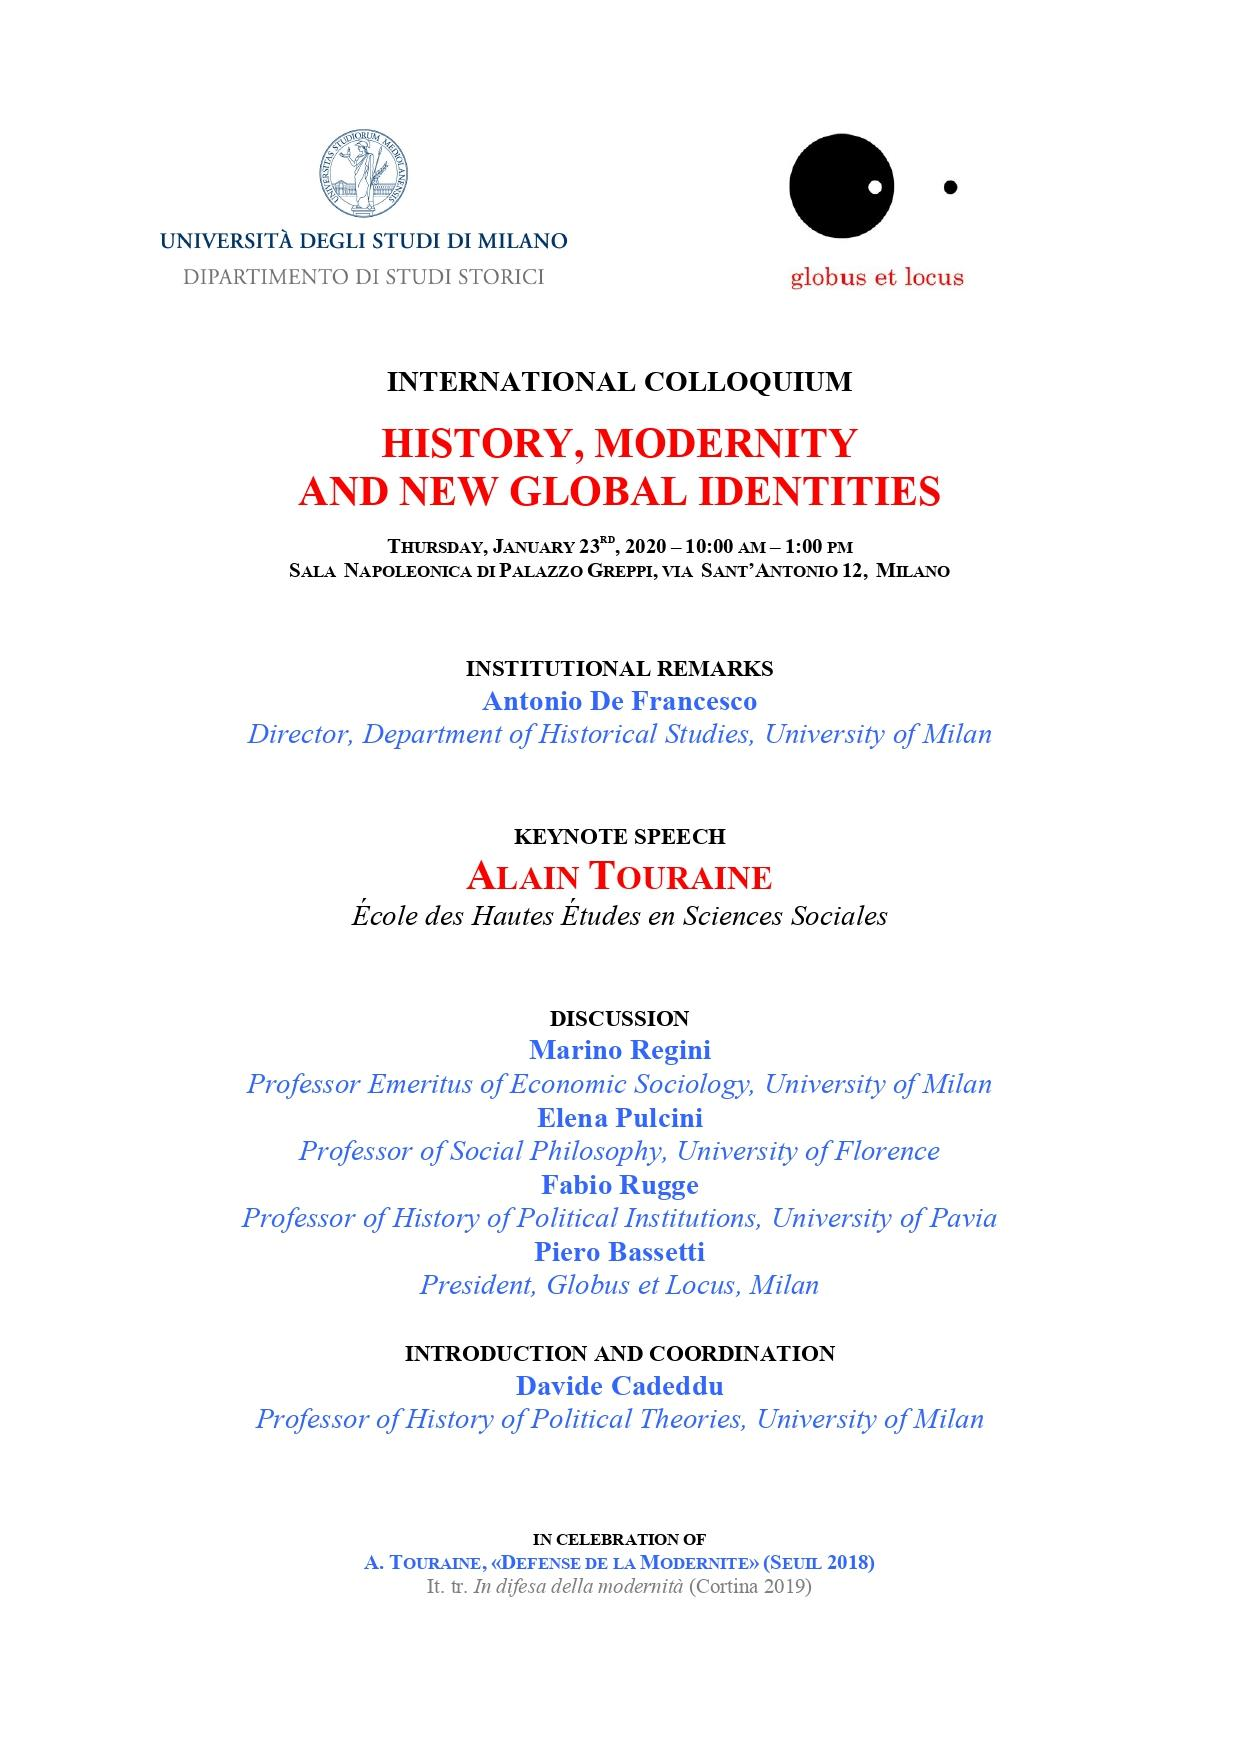 History, modernity and new global identities